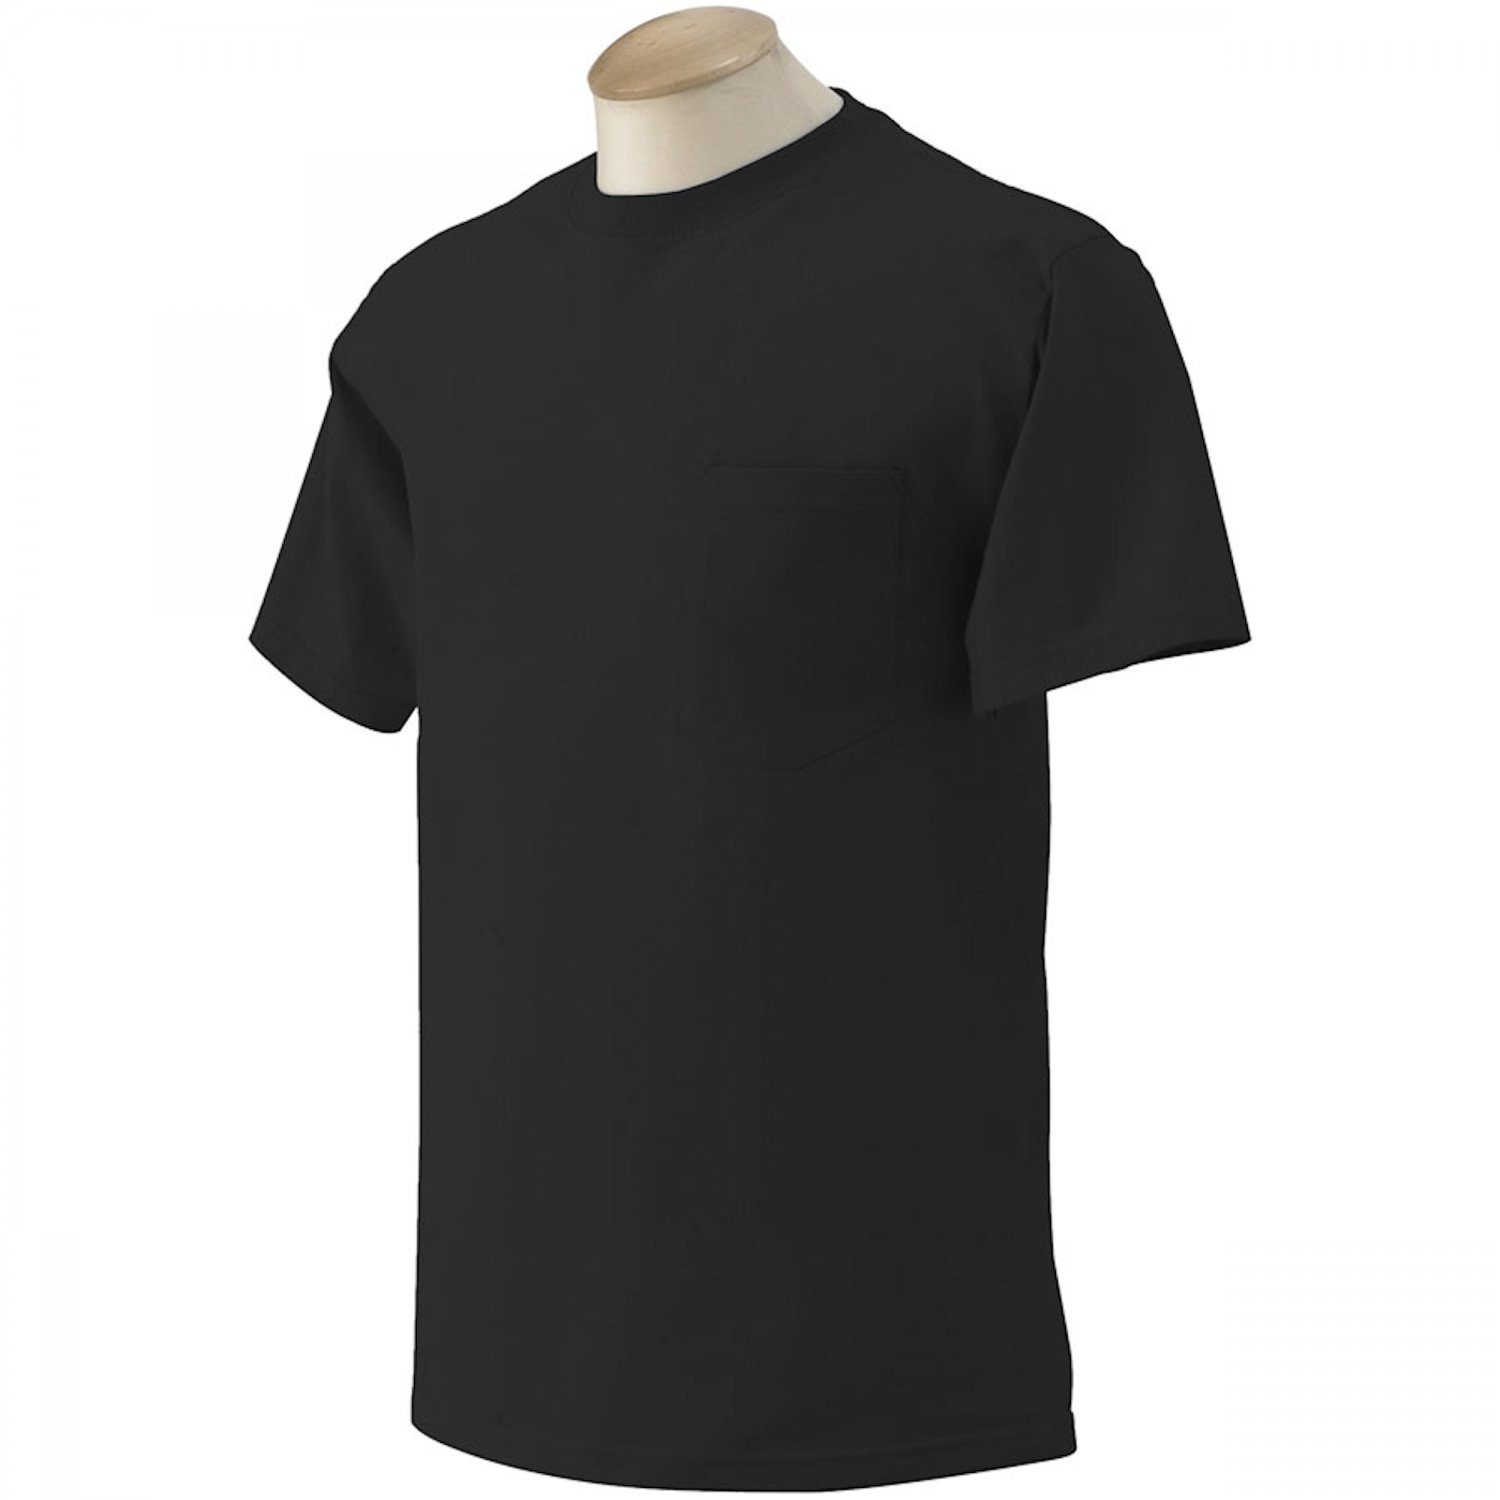 10 Gildan Big Tall Mens Pocket T Shirts Wholesale To